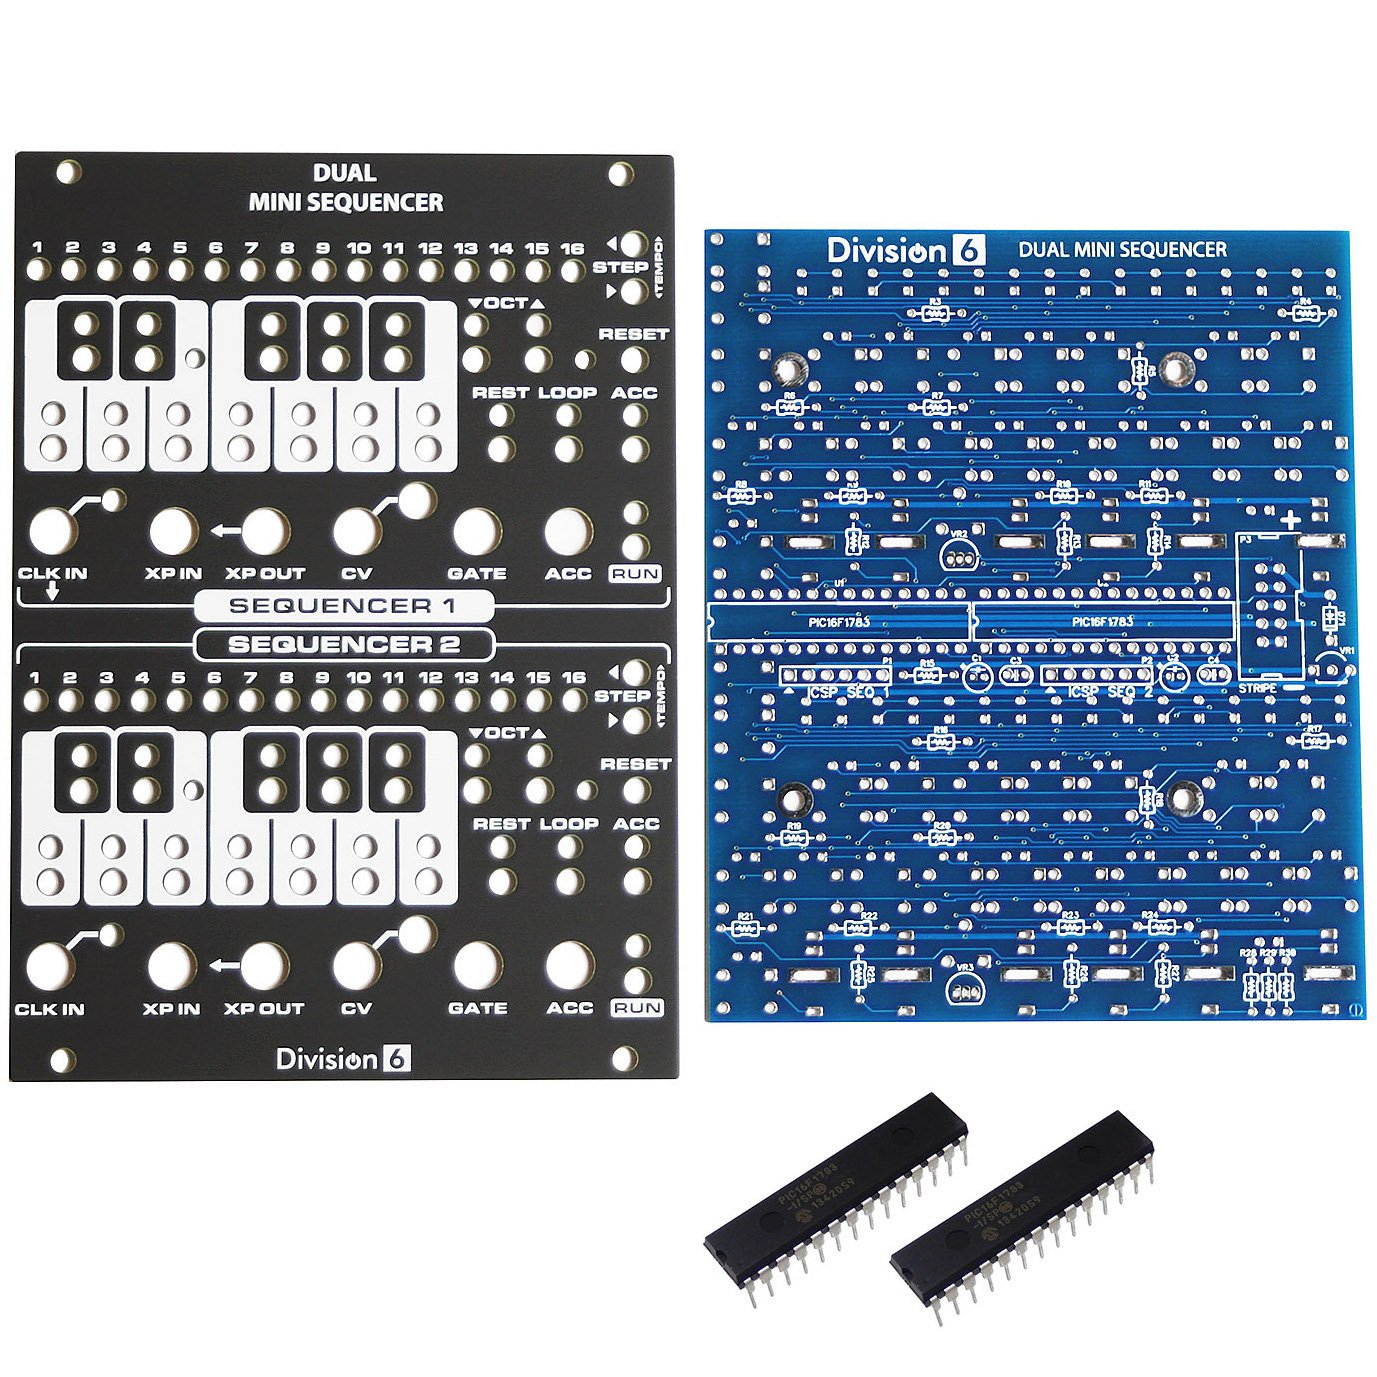 Division 6 Dual Mini Sequencer Eurorack PCB, Panel and ICs by Division 6